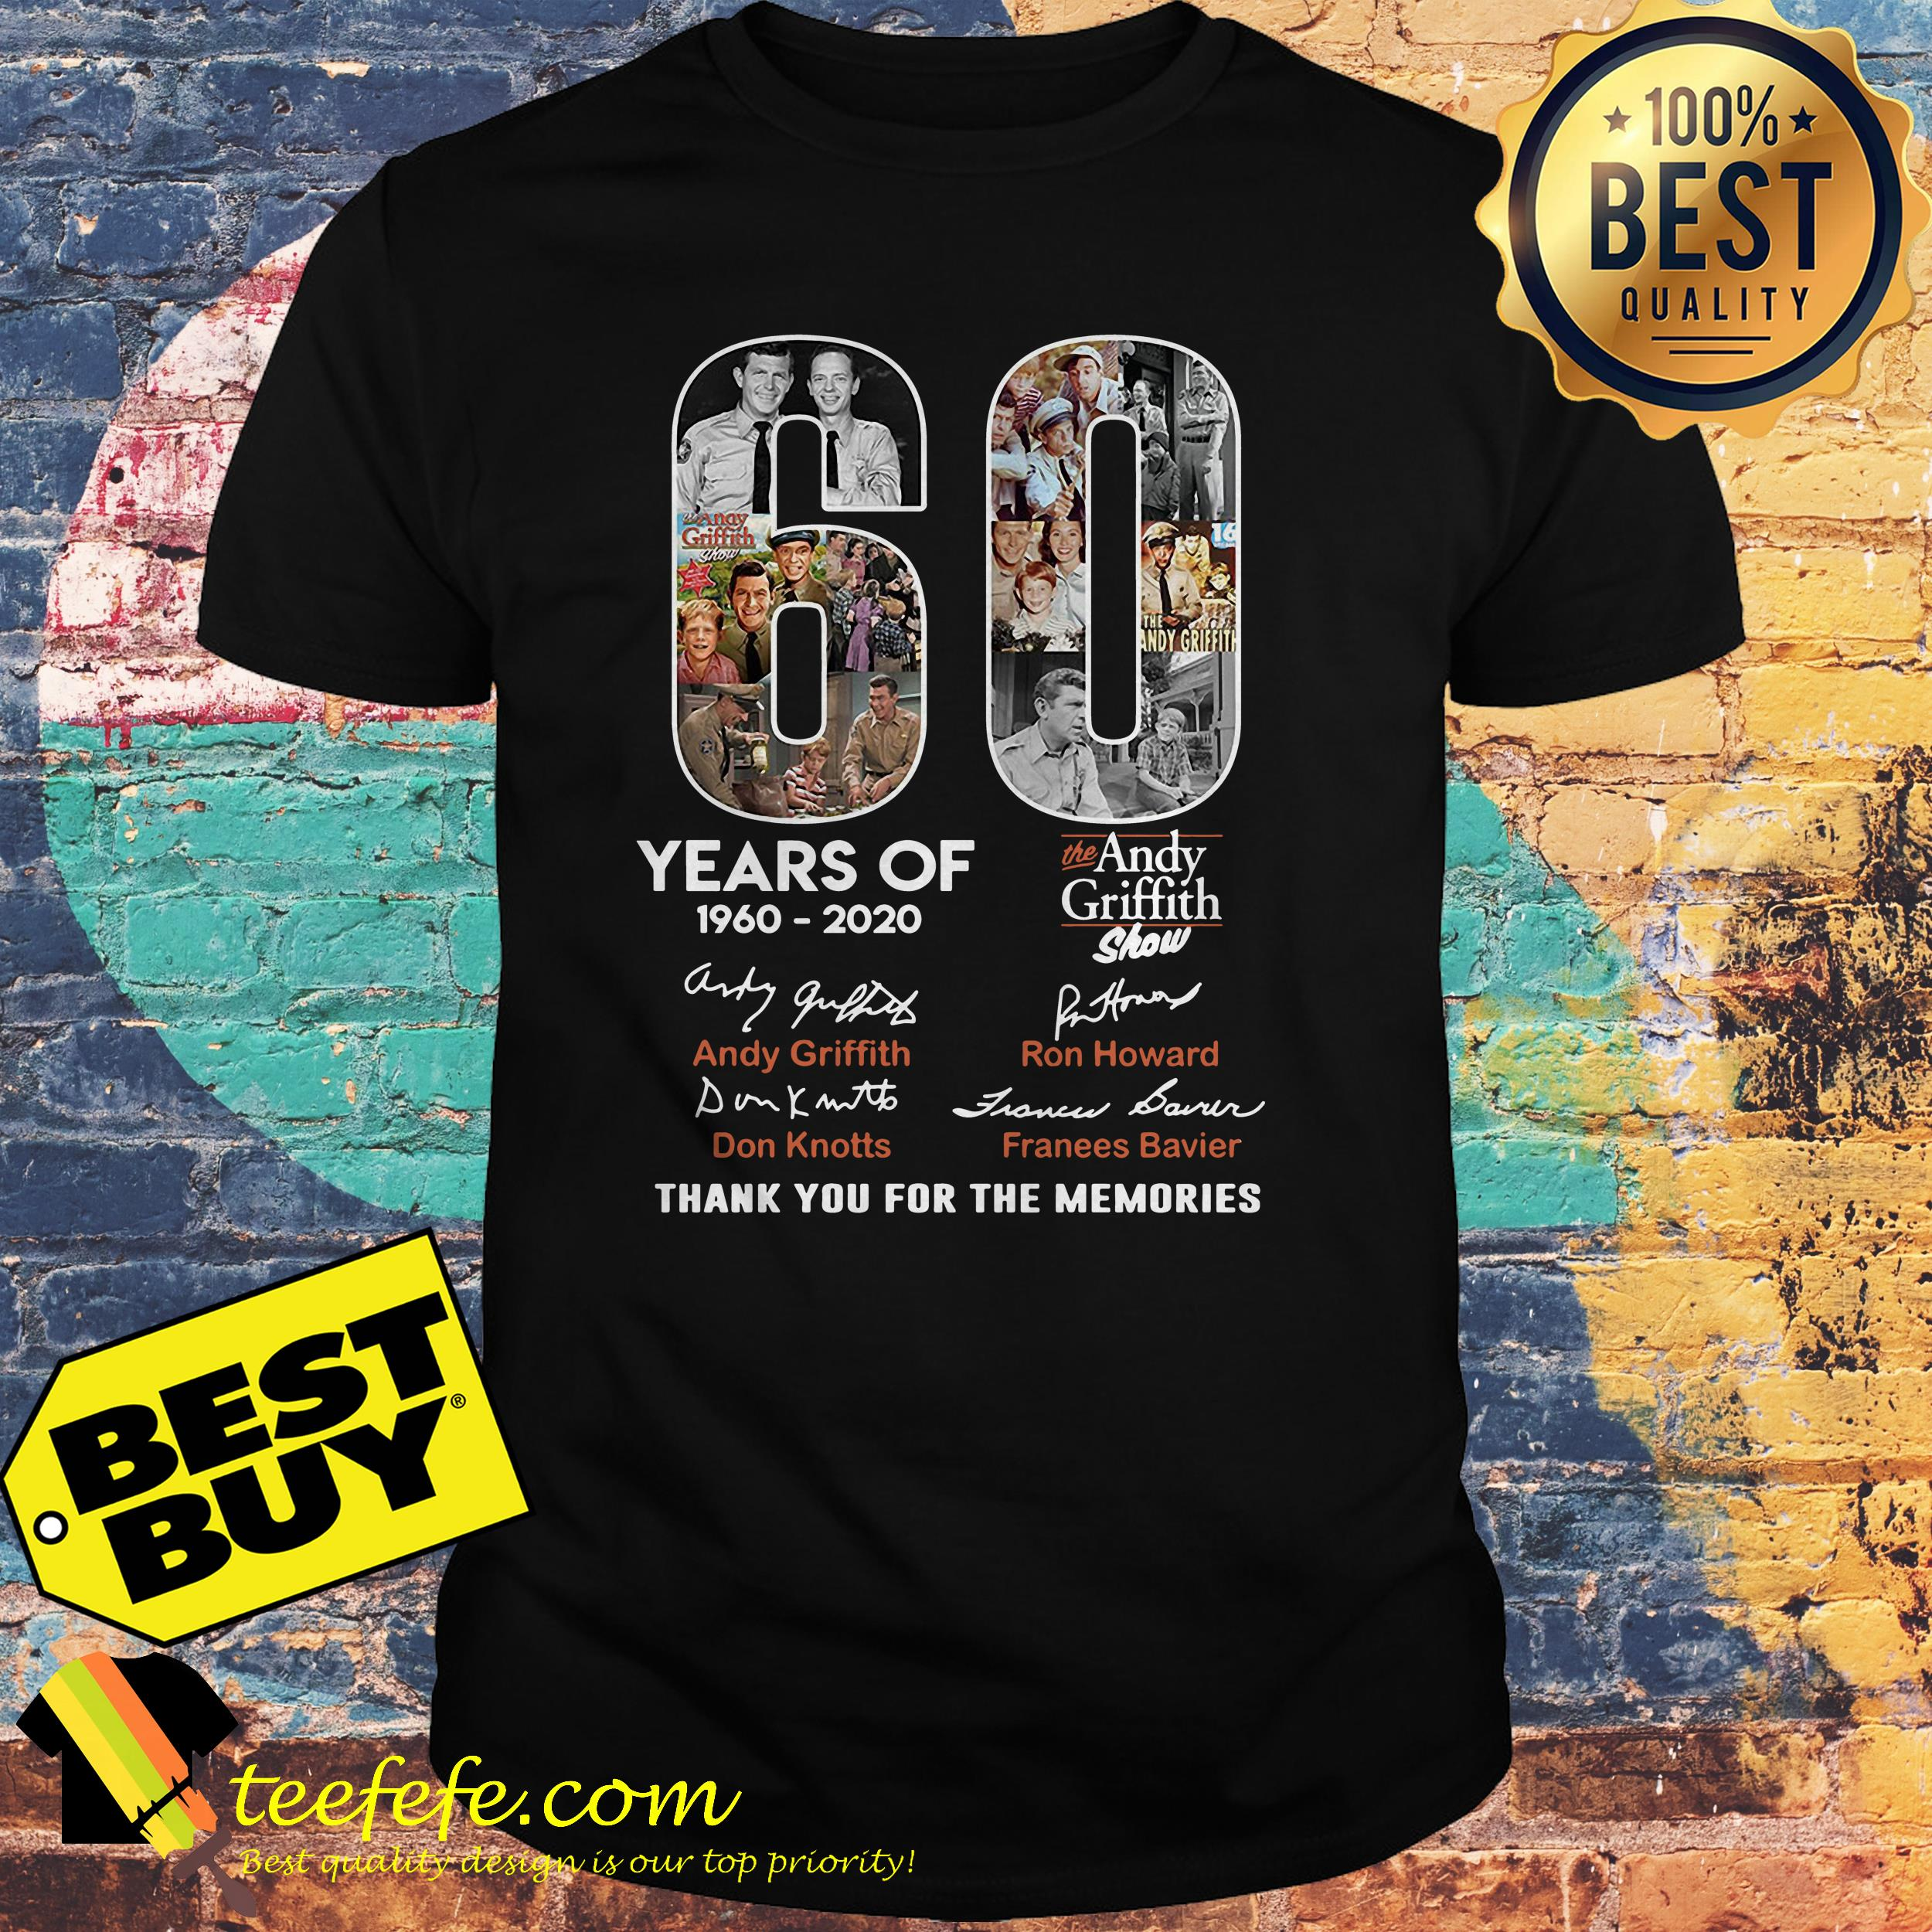 60 Years of the Andy Griffith Show 1960-2020 thank you for the memories shirt